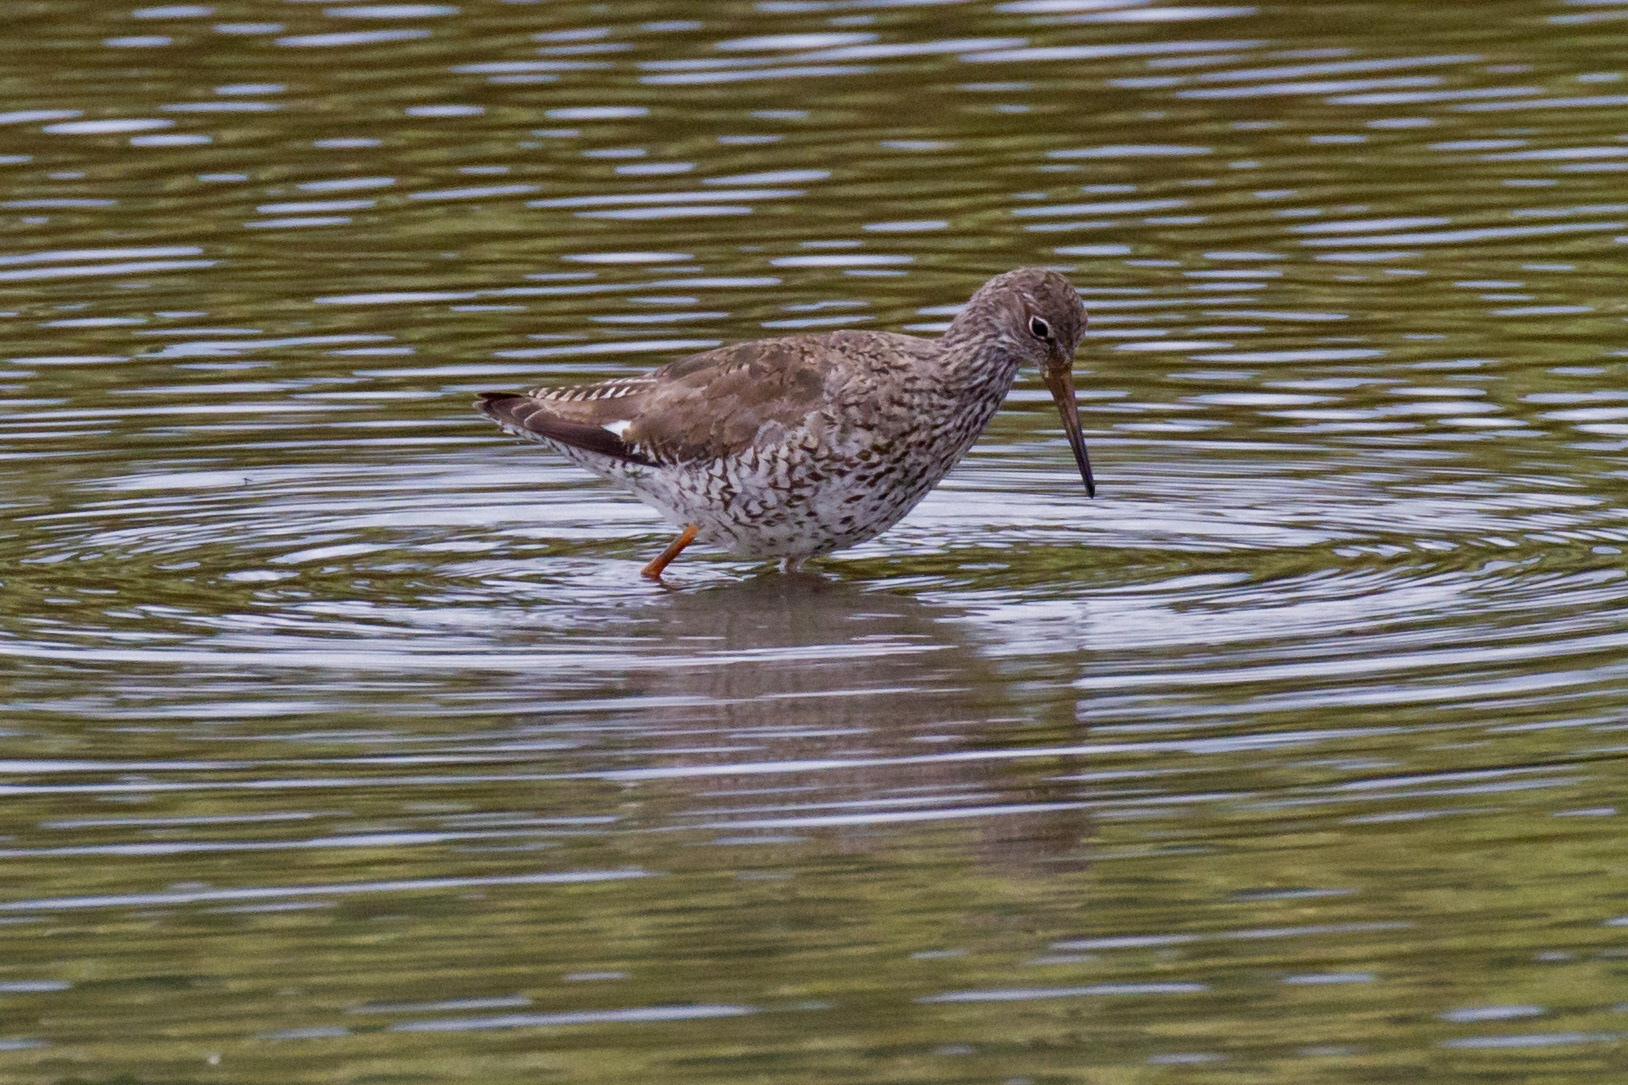 Redshank  by Steve Rawlings